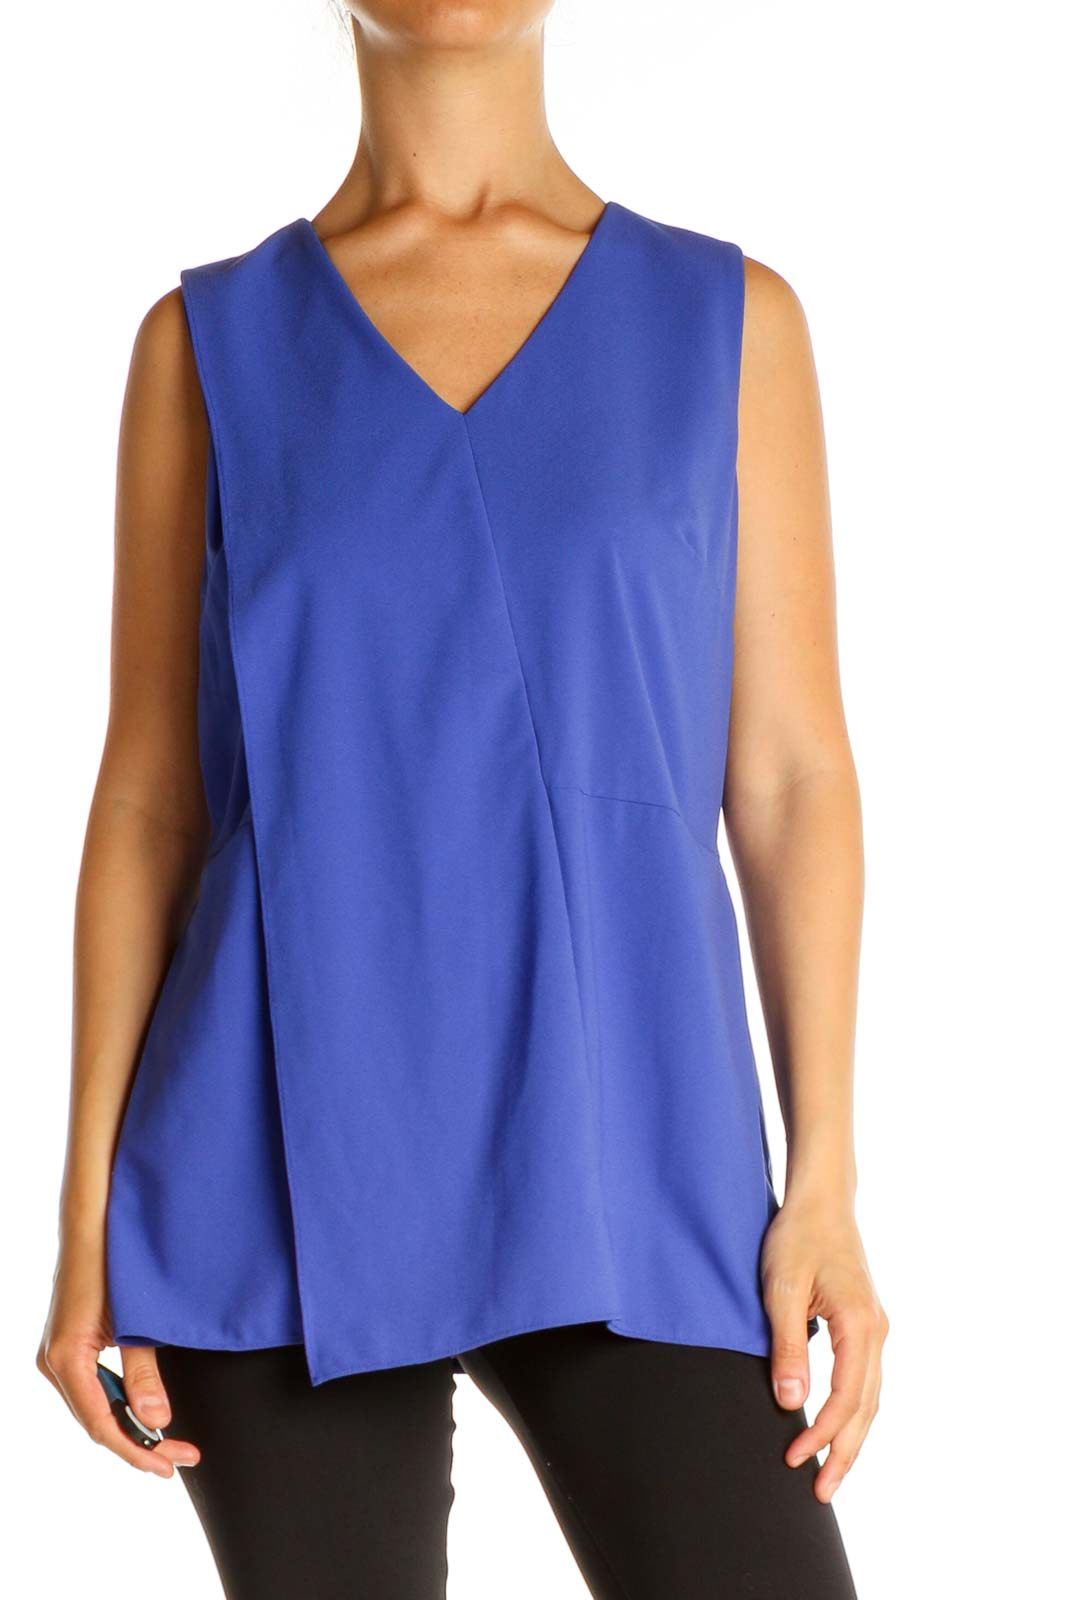 Blue Solid Work Blouse Front